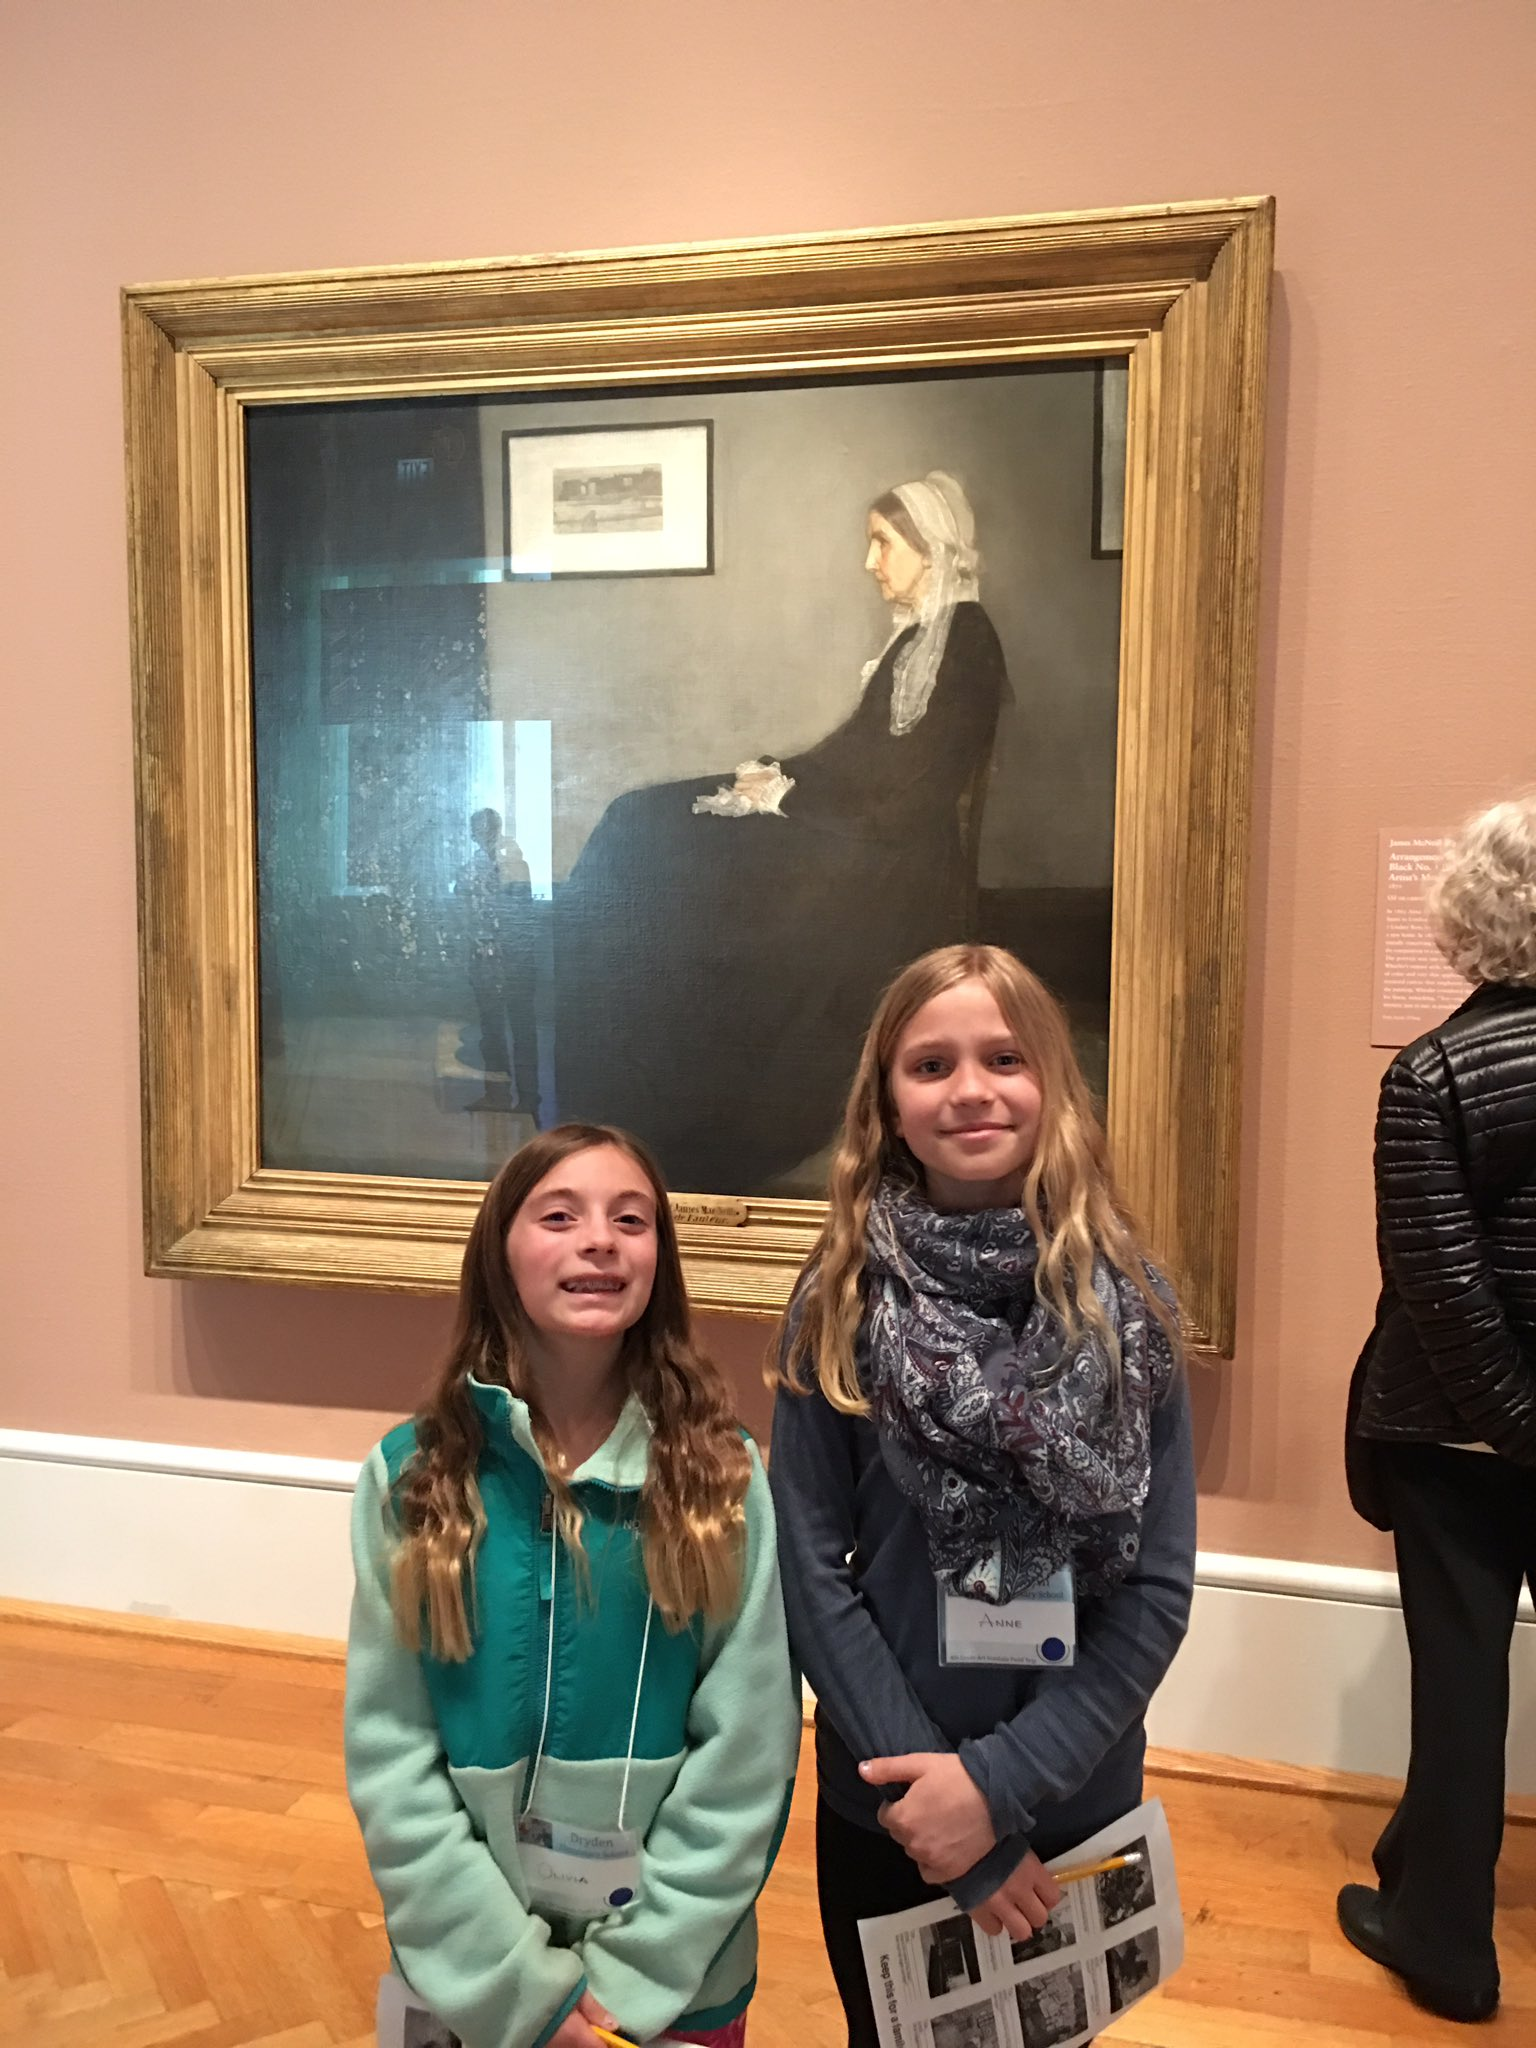 A great opportunity to see Whistler's Mother. @fuglefun #drydenartic https://t.co/ETxO28vuaW